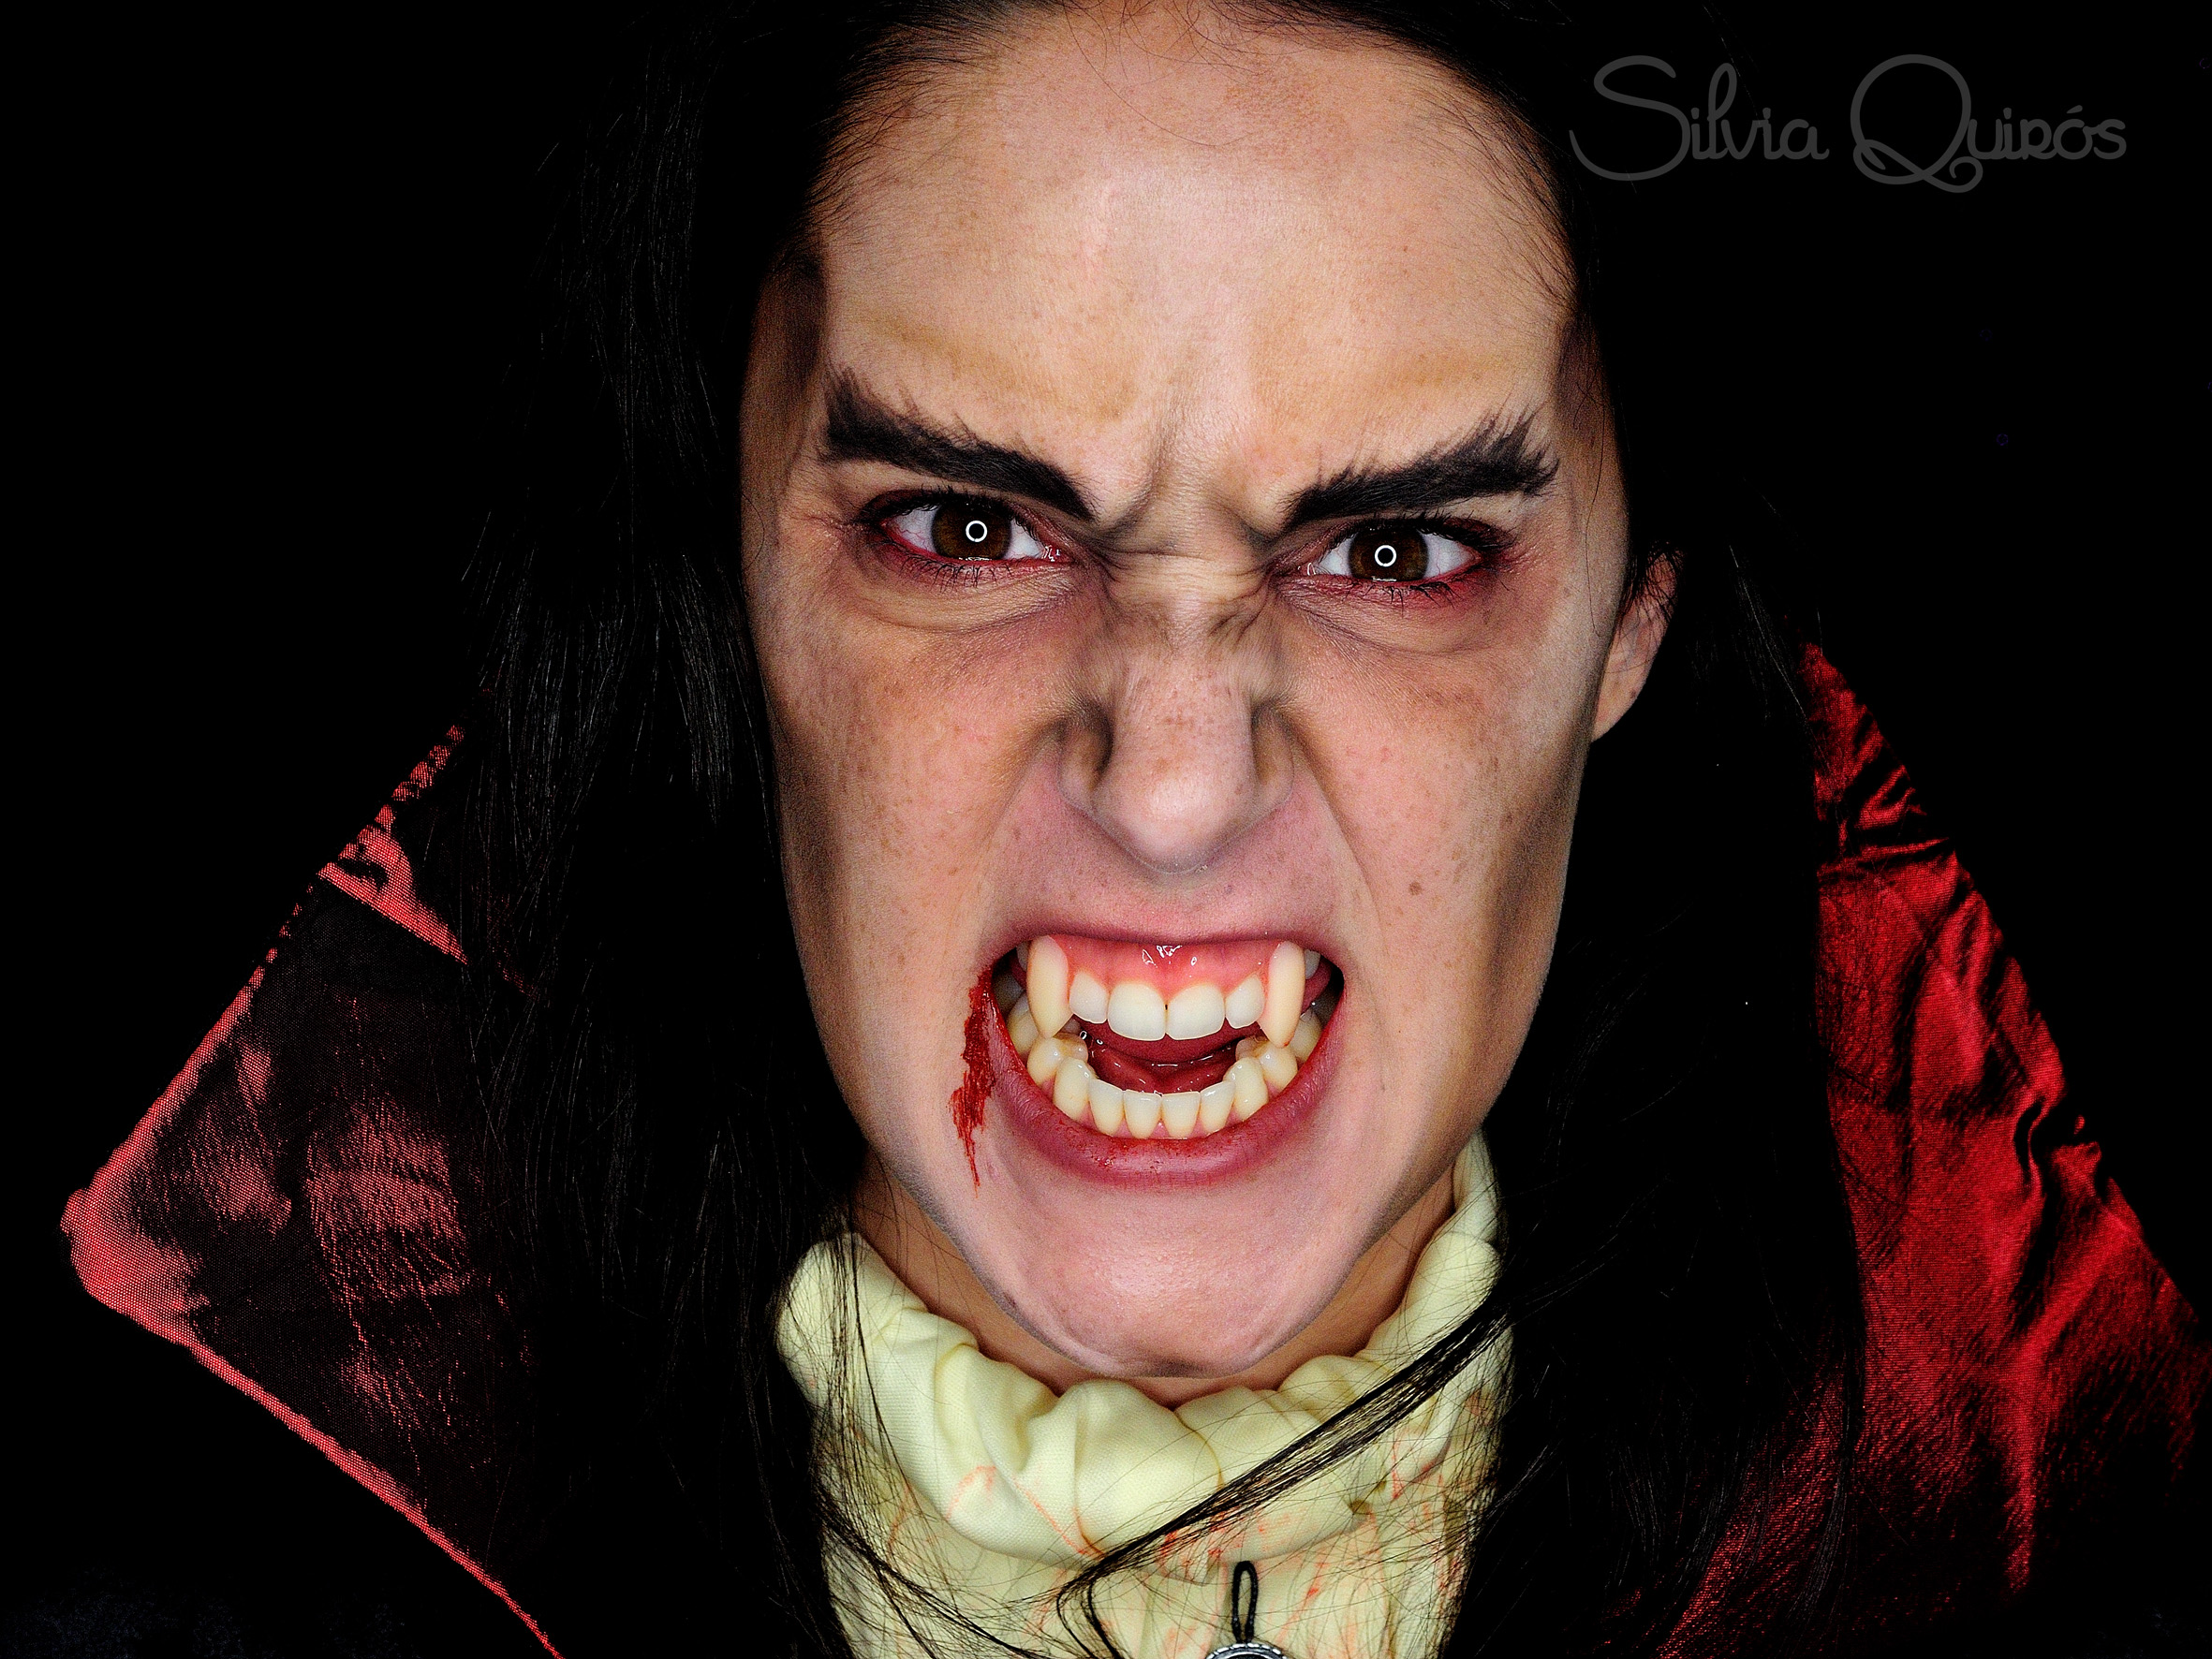 Vampire makeup for kids and adults